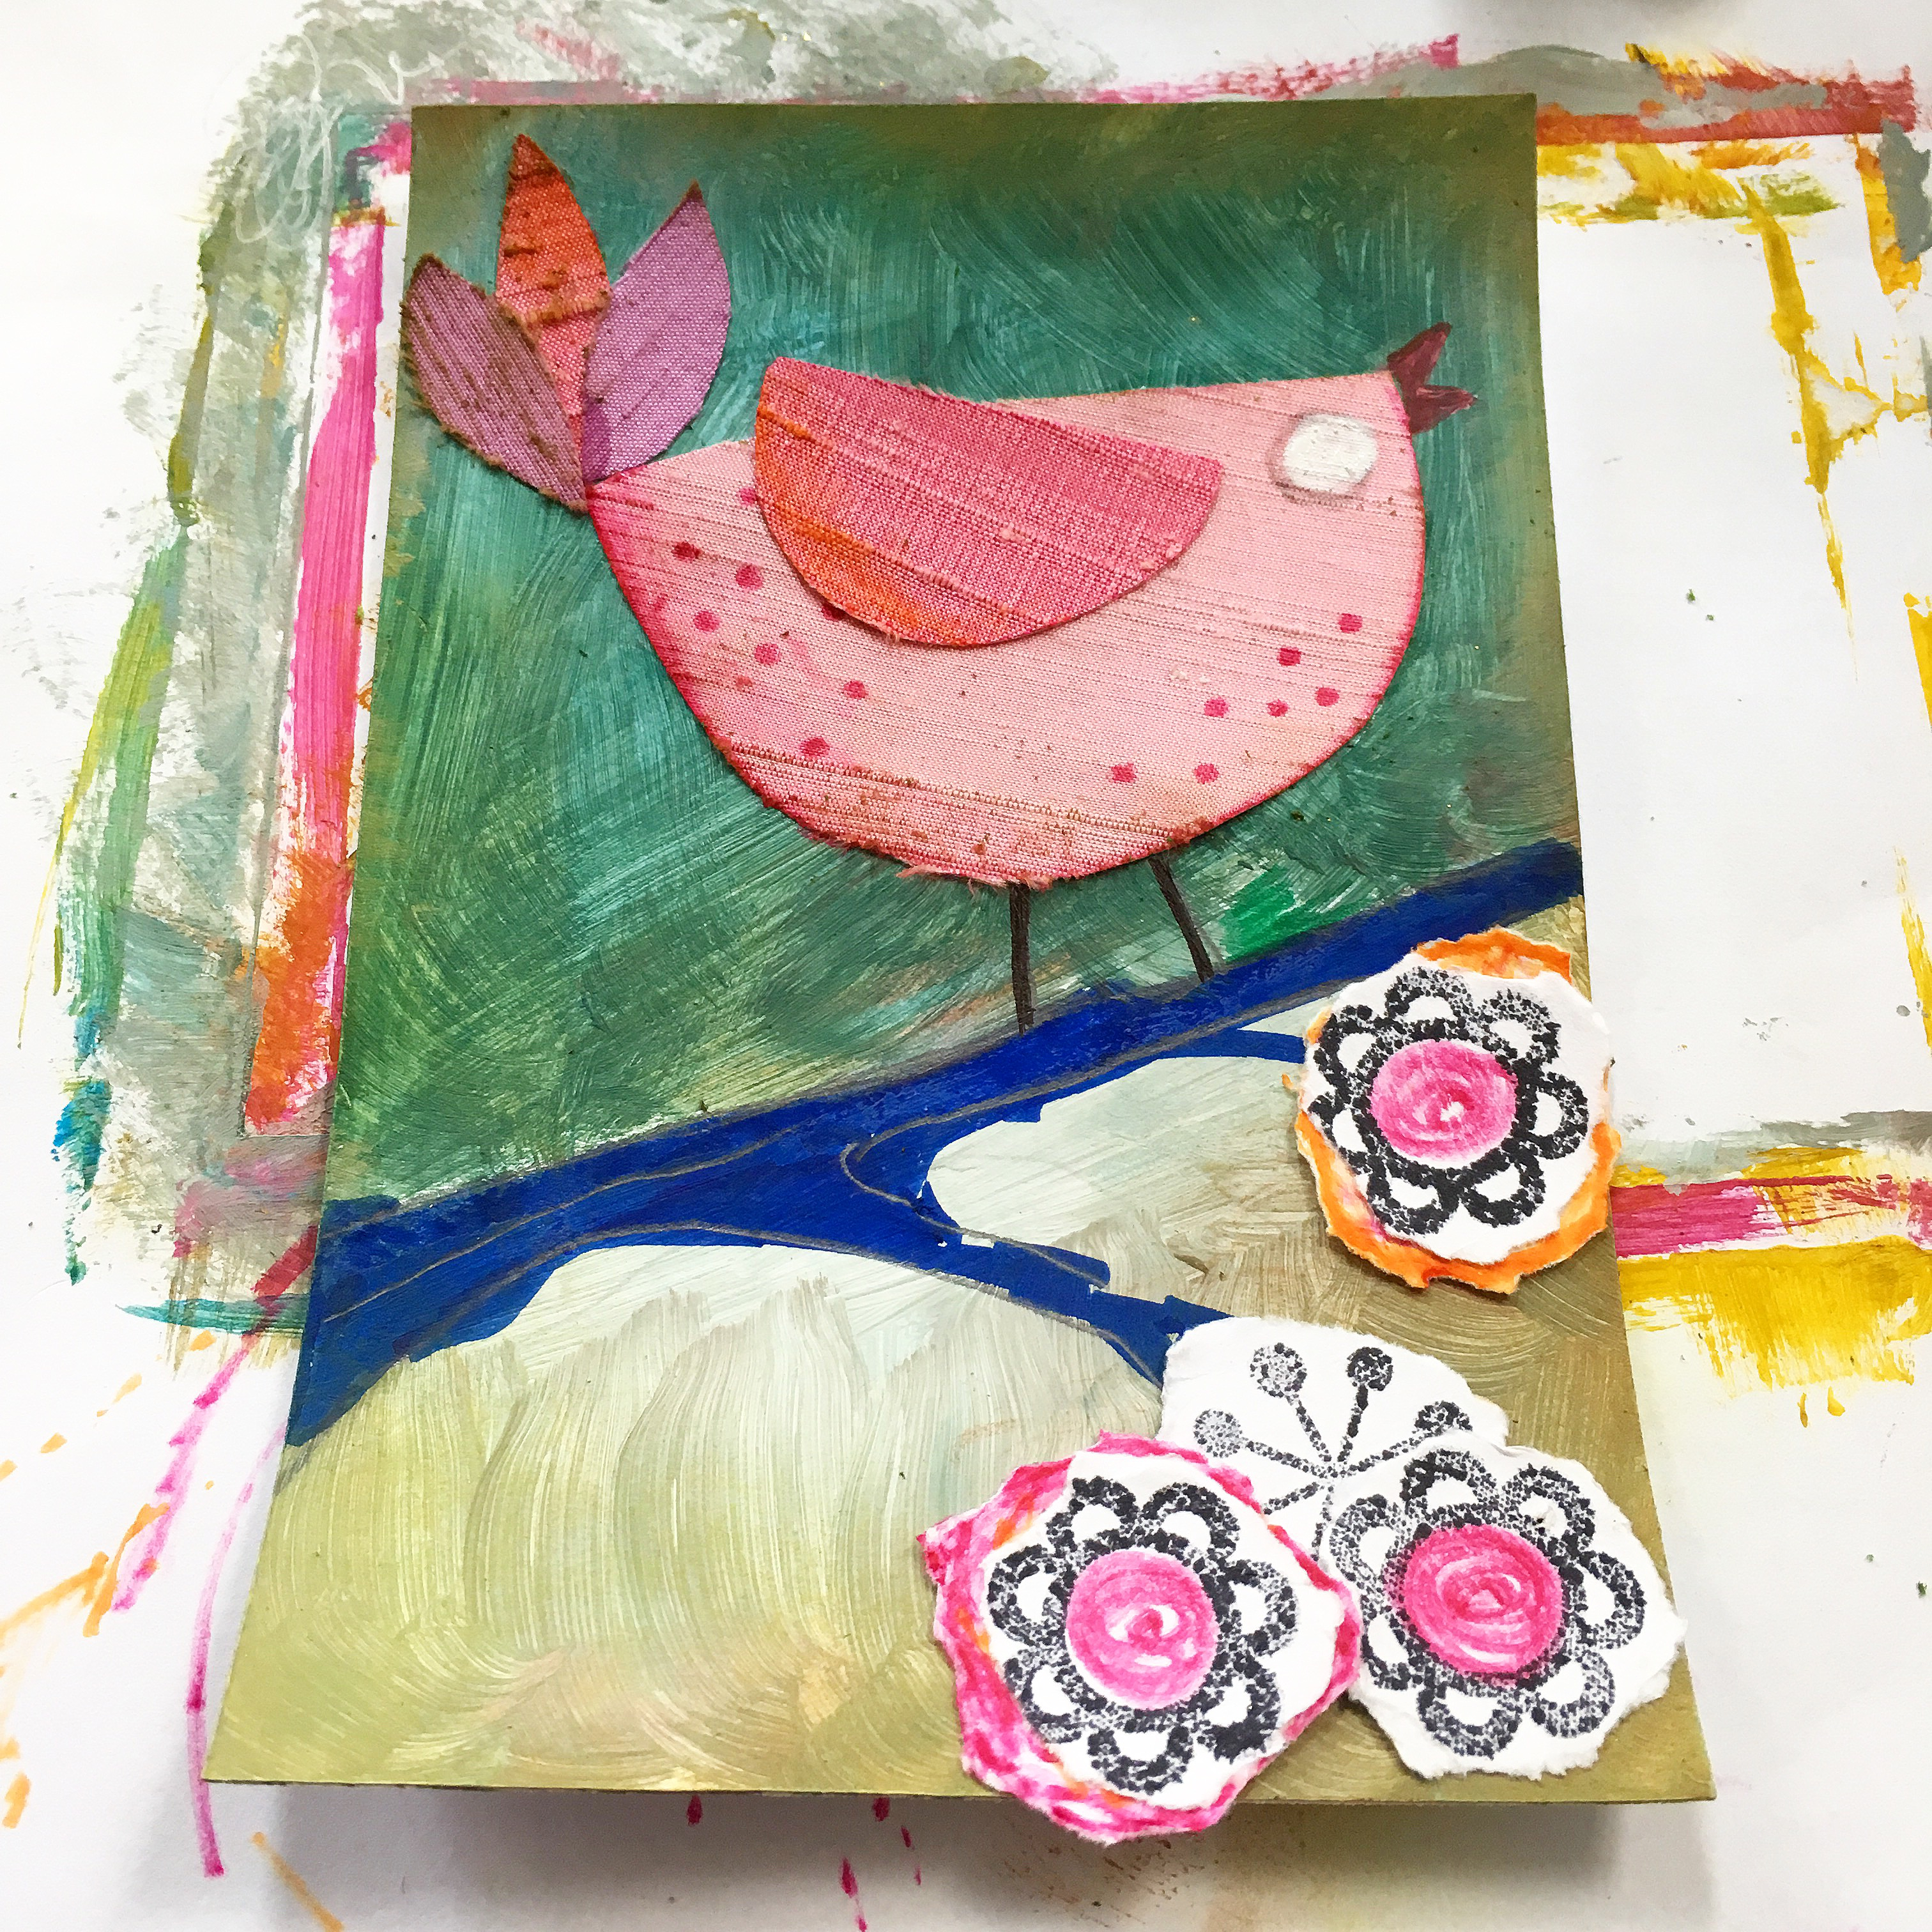 silk fabric collage bird with acrylic background and torn paper flowers